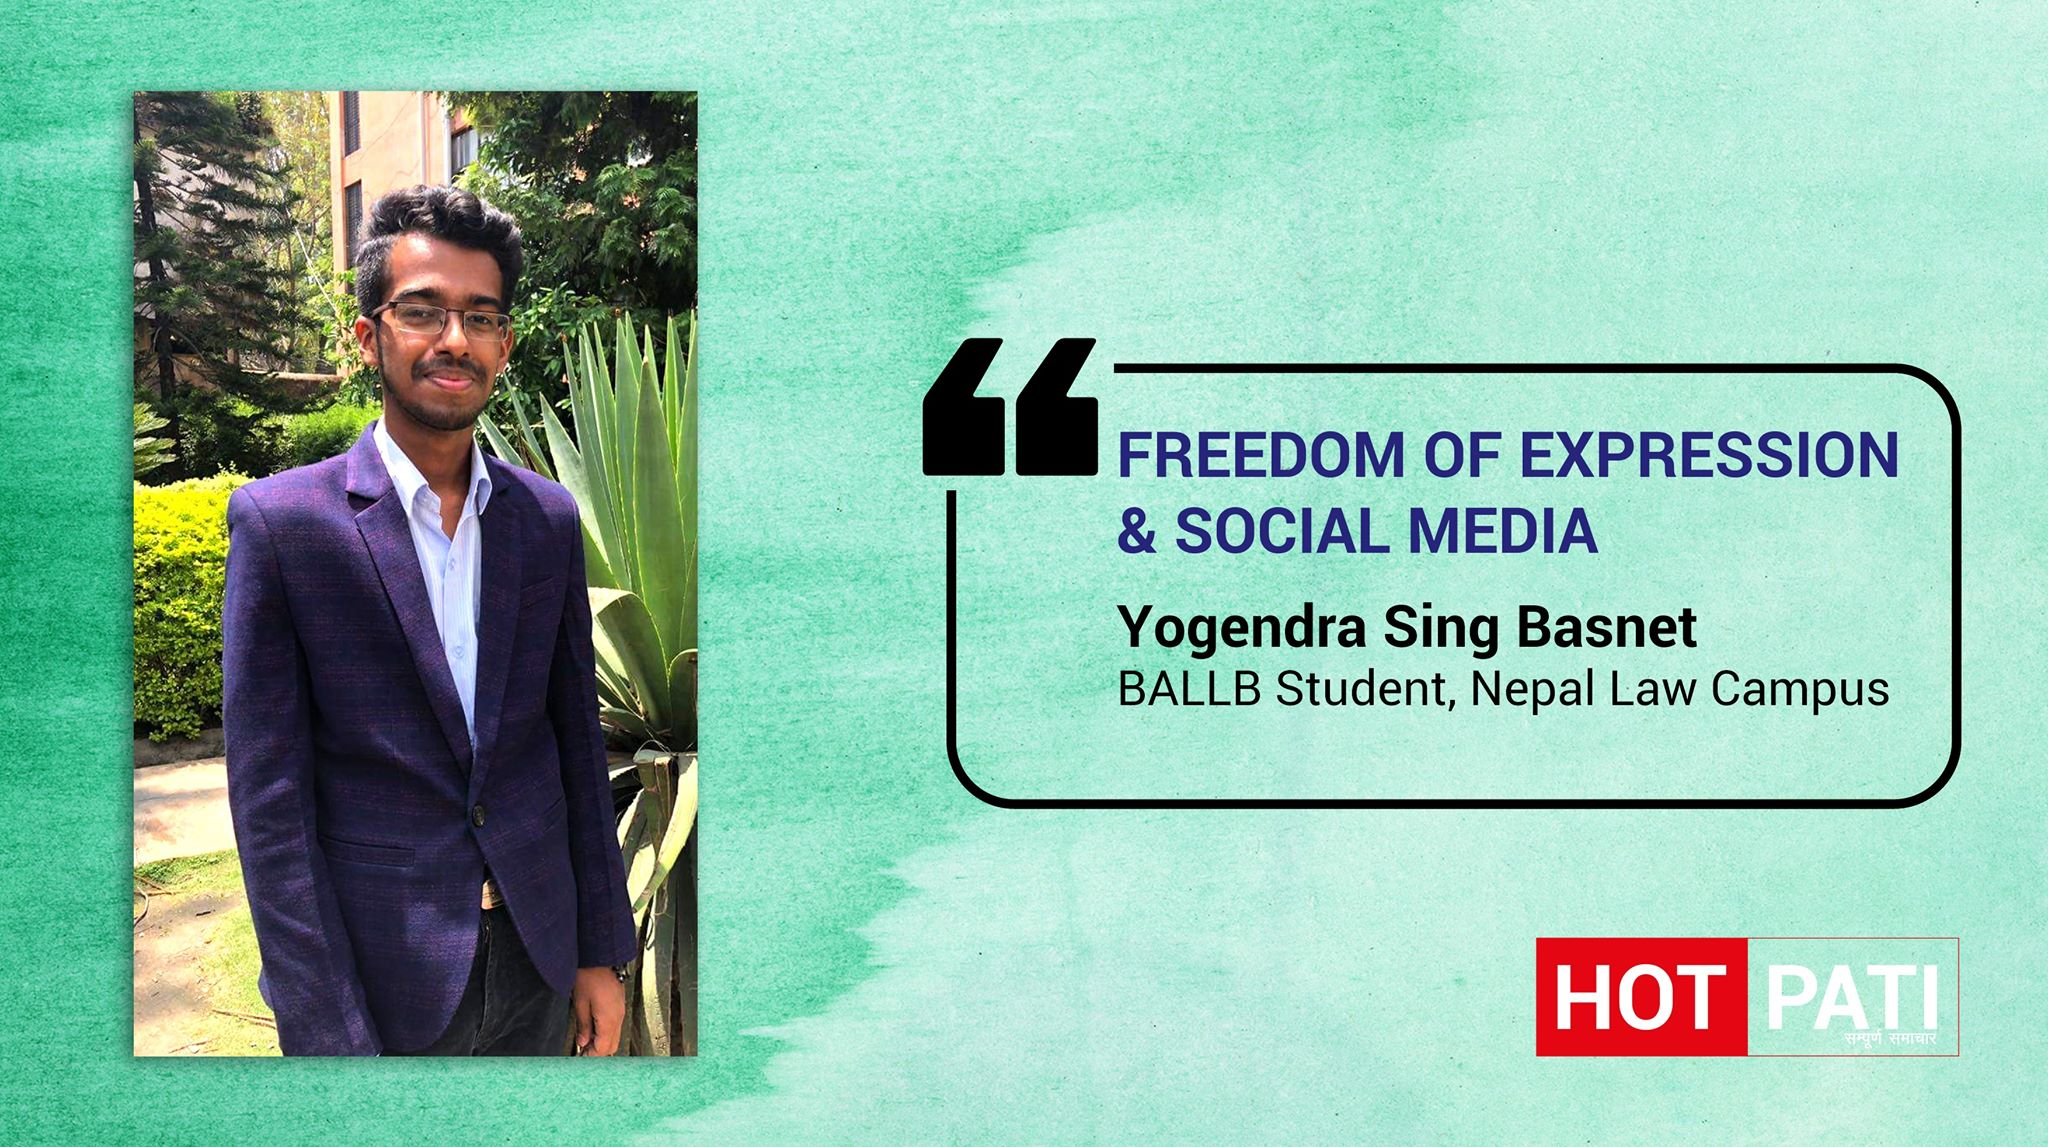 Freedom of expression and Social Media